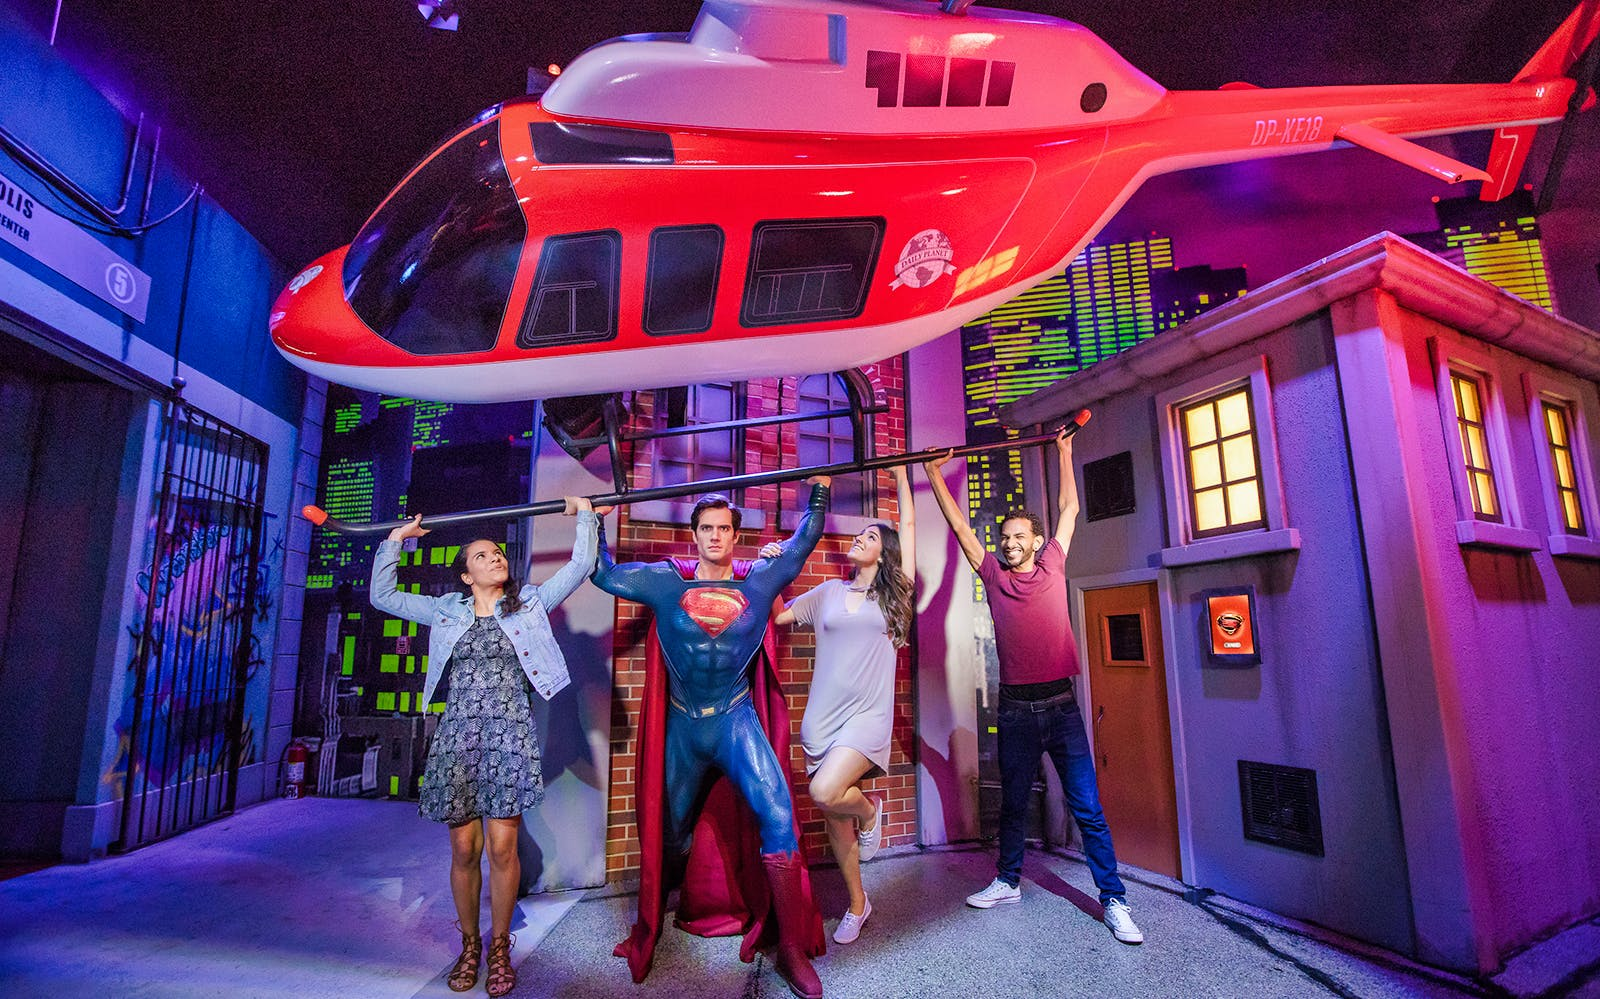 skip the line tickets to madame tussauds sydney-2